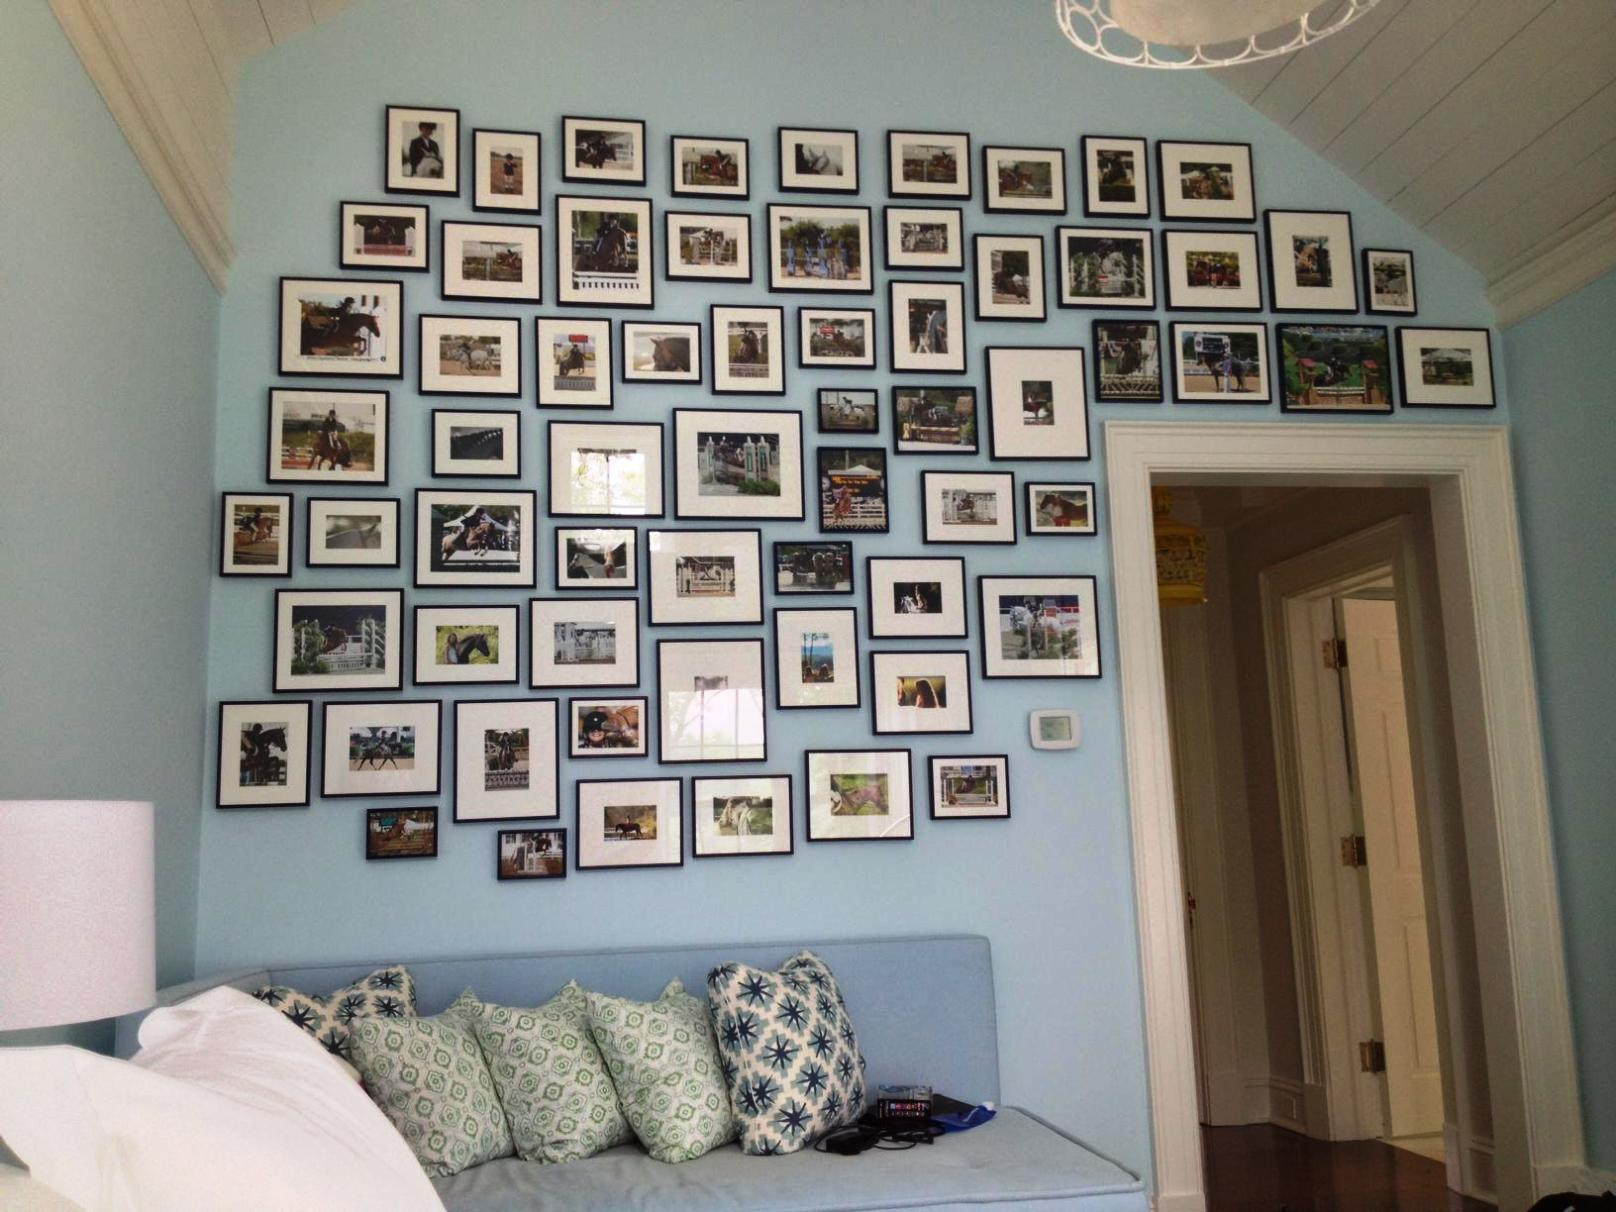 Stunning Design Of The Bedroom Areas With Blue Wall Added With Many Pics As The Photo Wall Ideas With White Bed Ideas